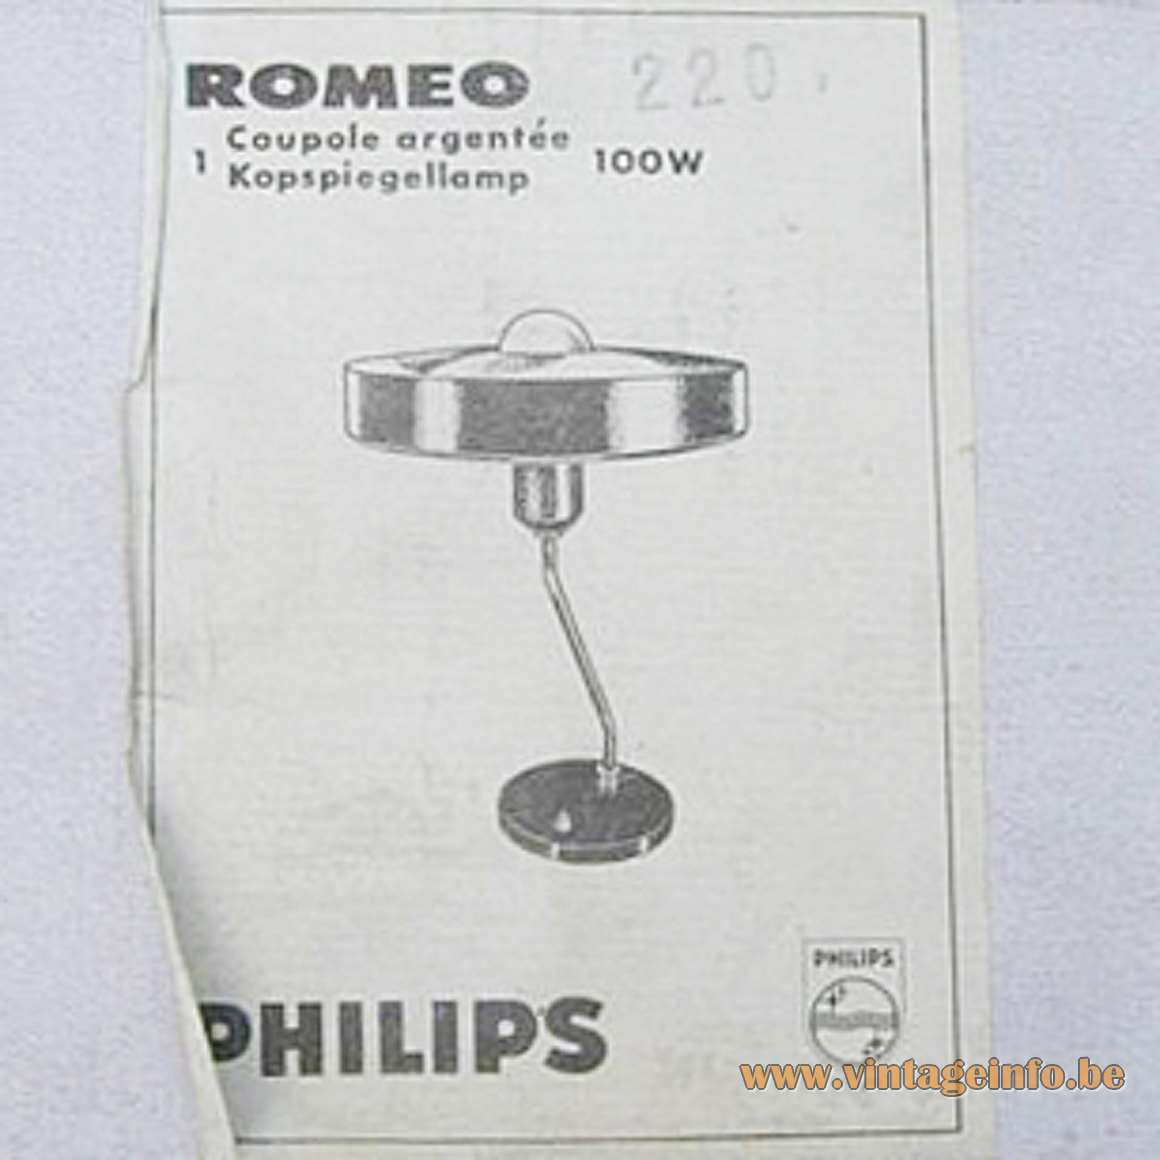 Philips Romeo Desk Lamp - Stickers on the Box